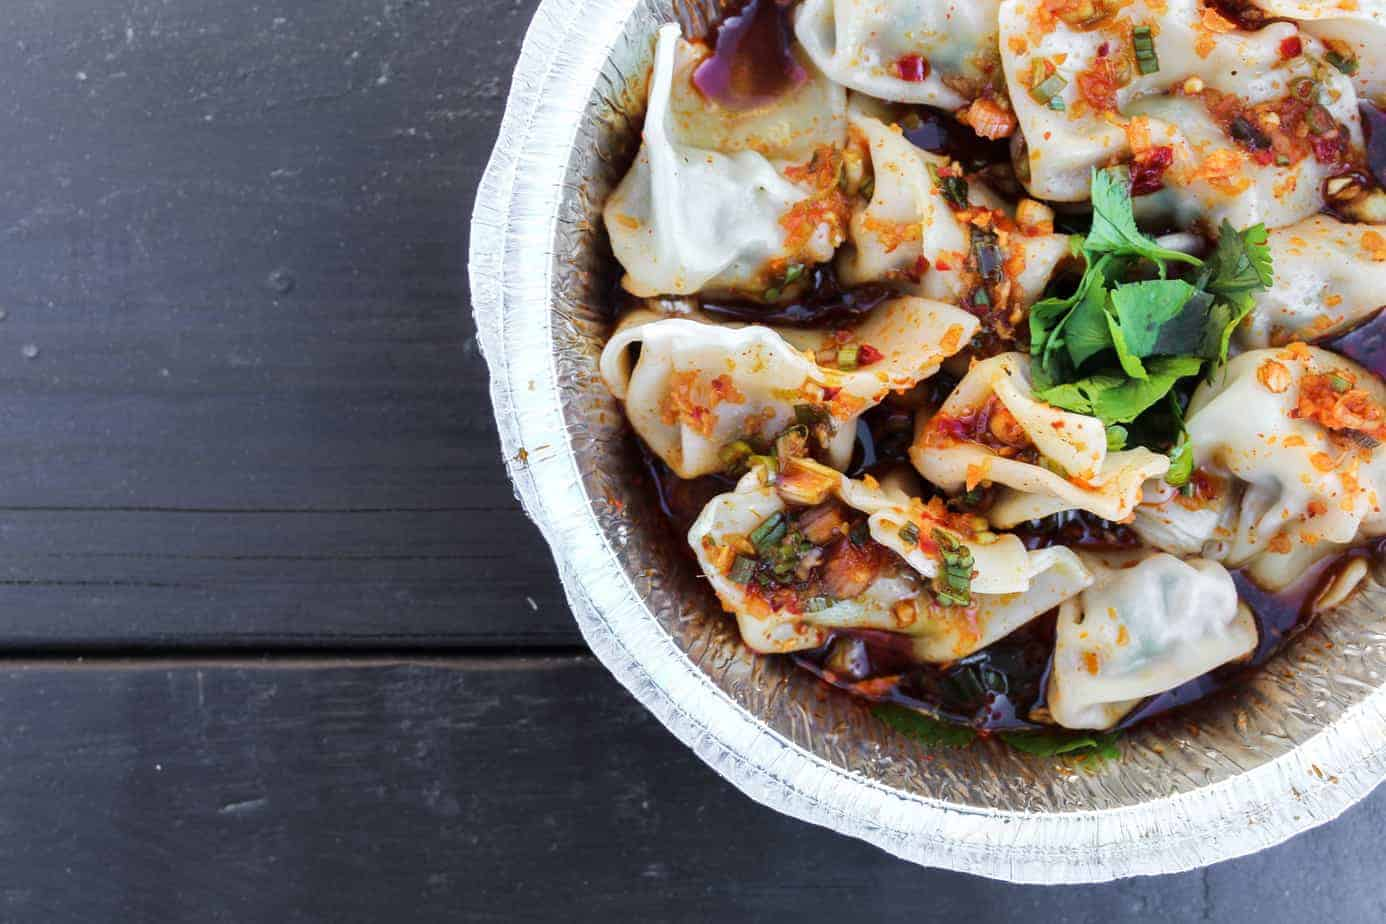 pork and chive dumplings from the dumpling lady on a picnic table